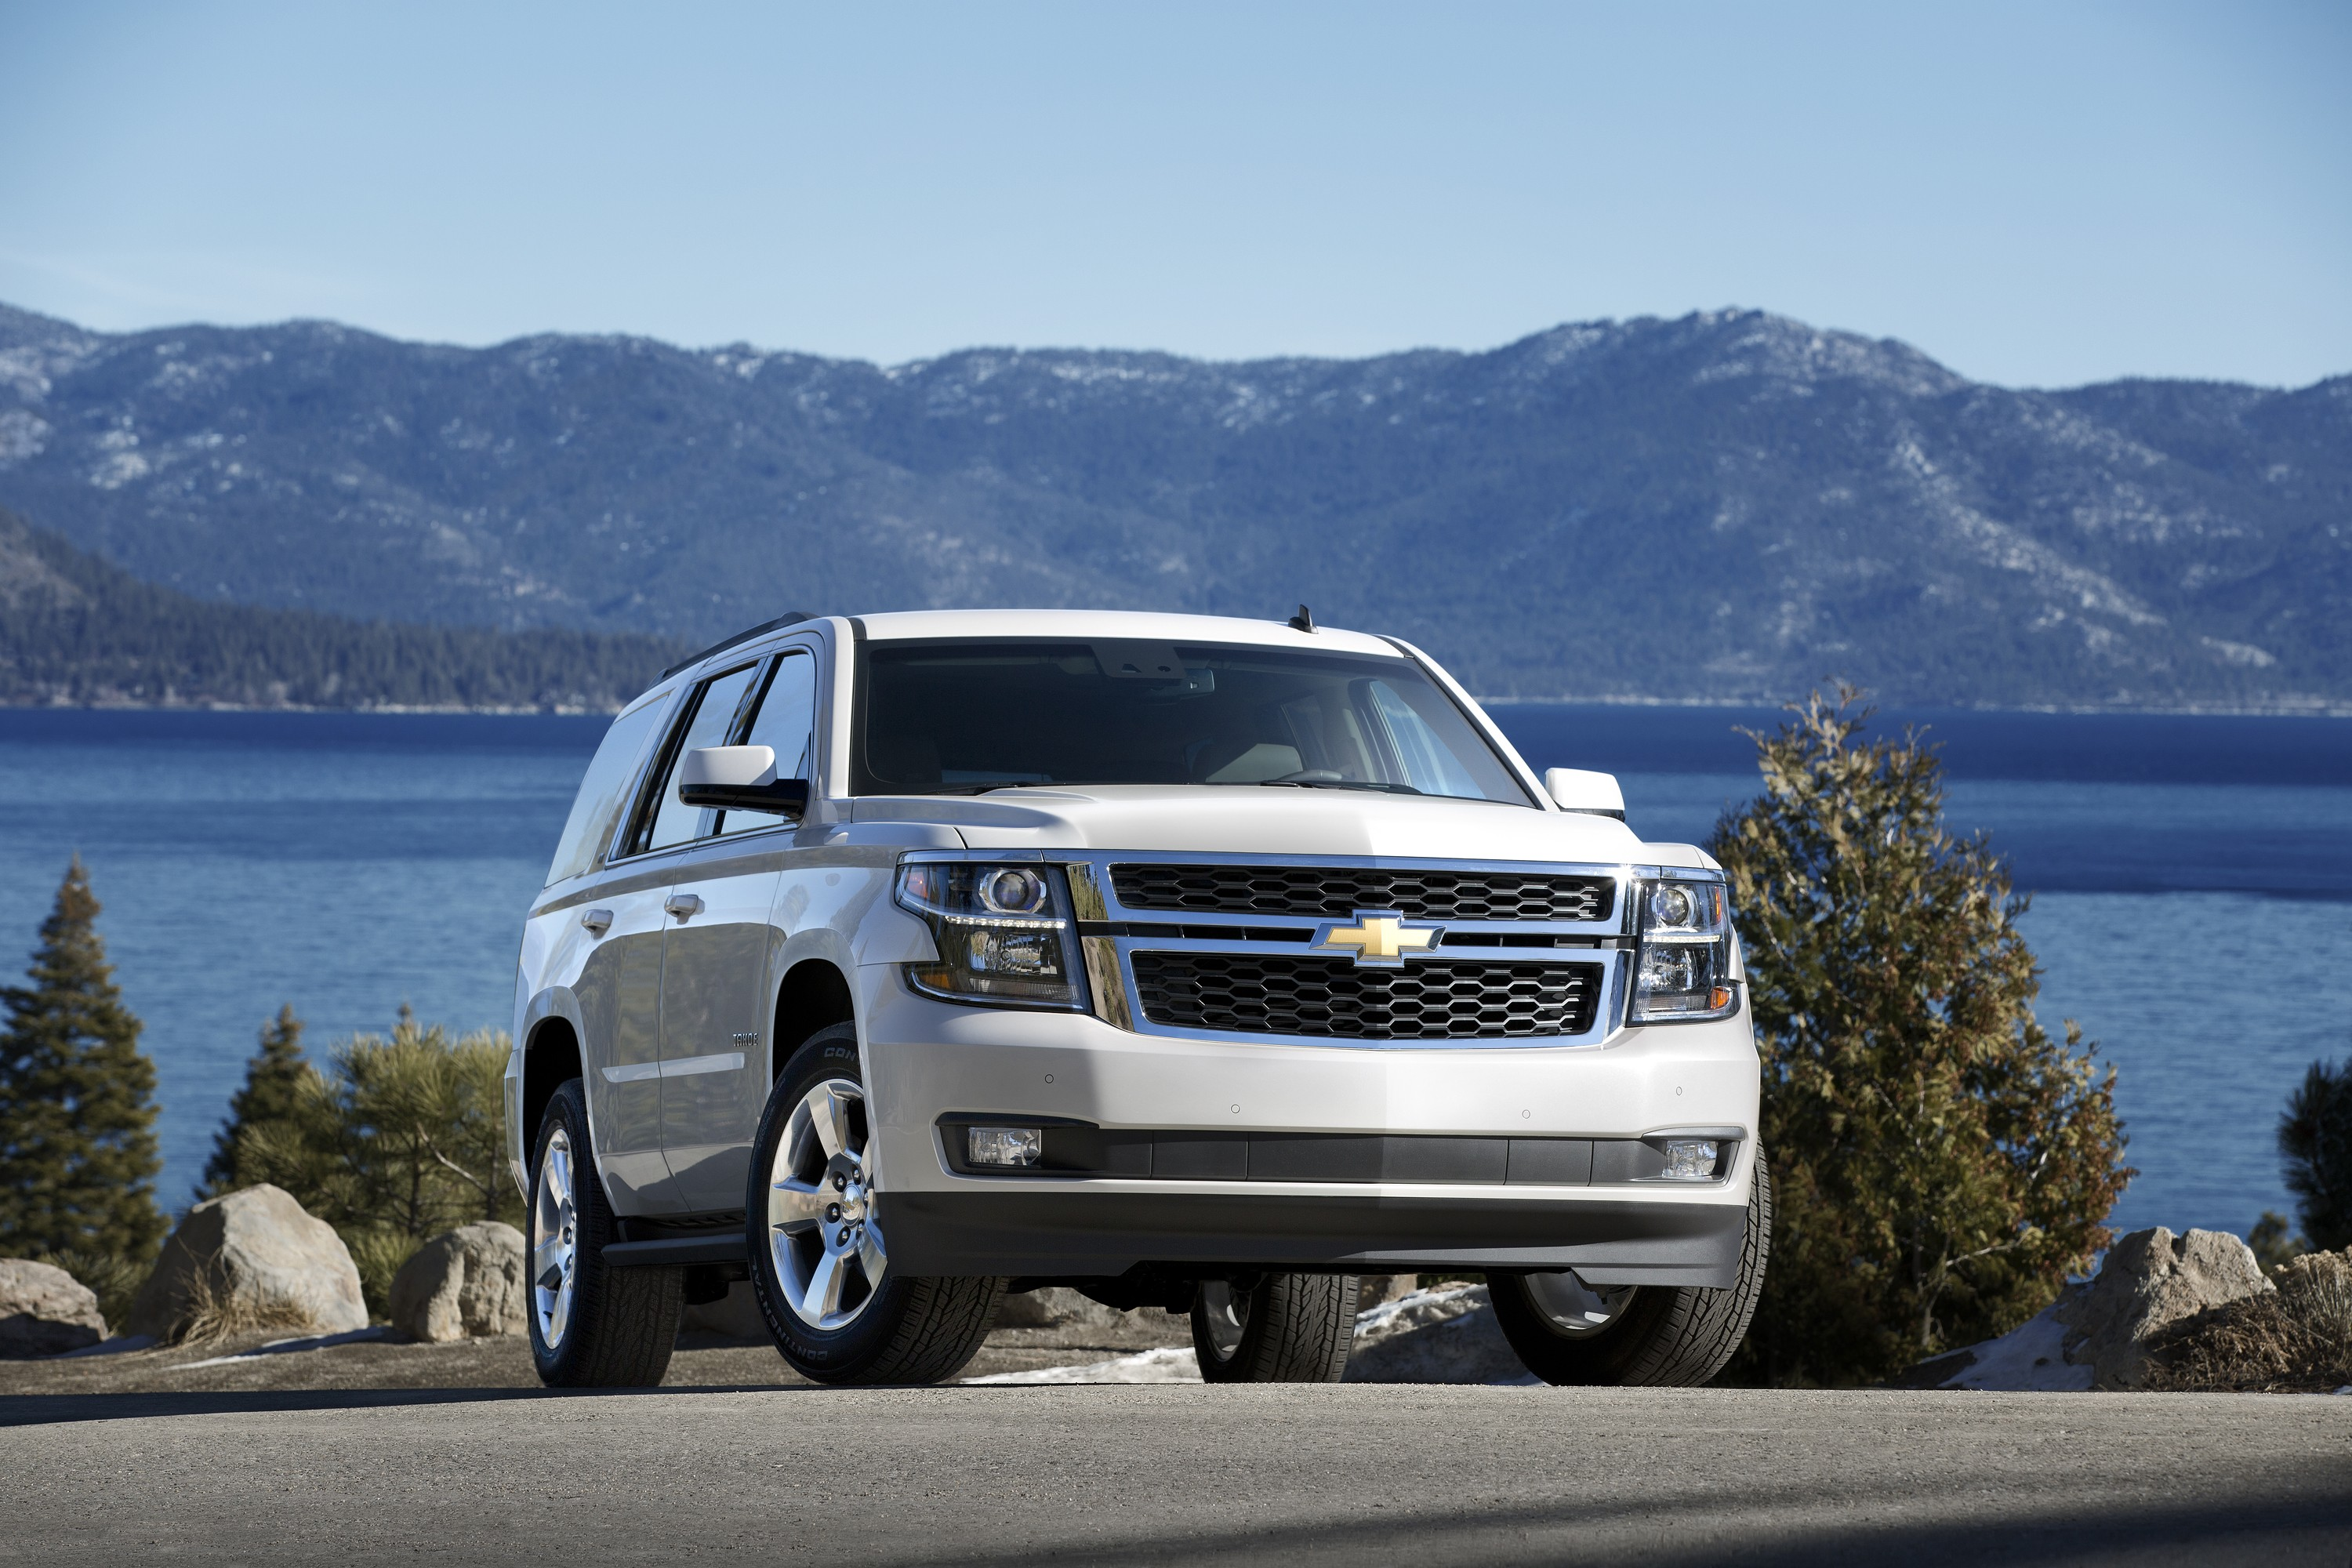 chevrolet ls tahoe sale for in houston photo suv details tx stock vehicle